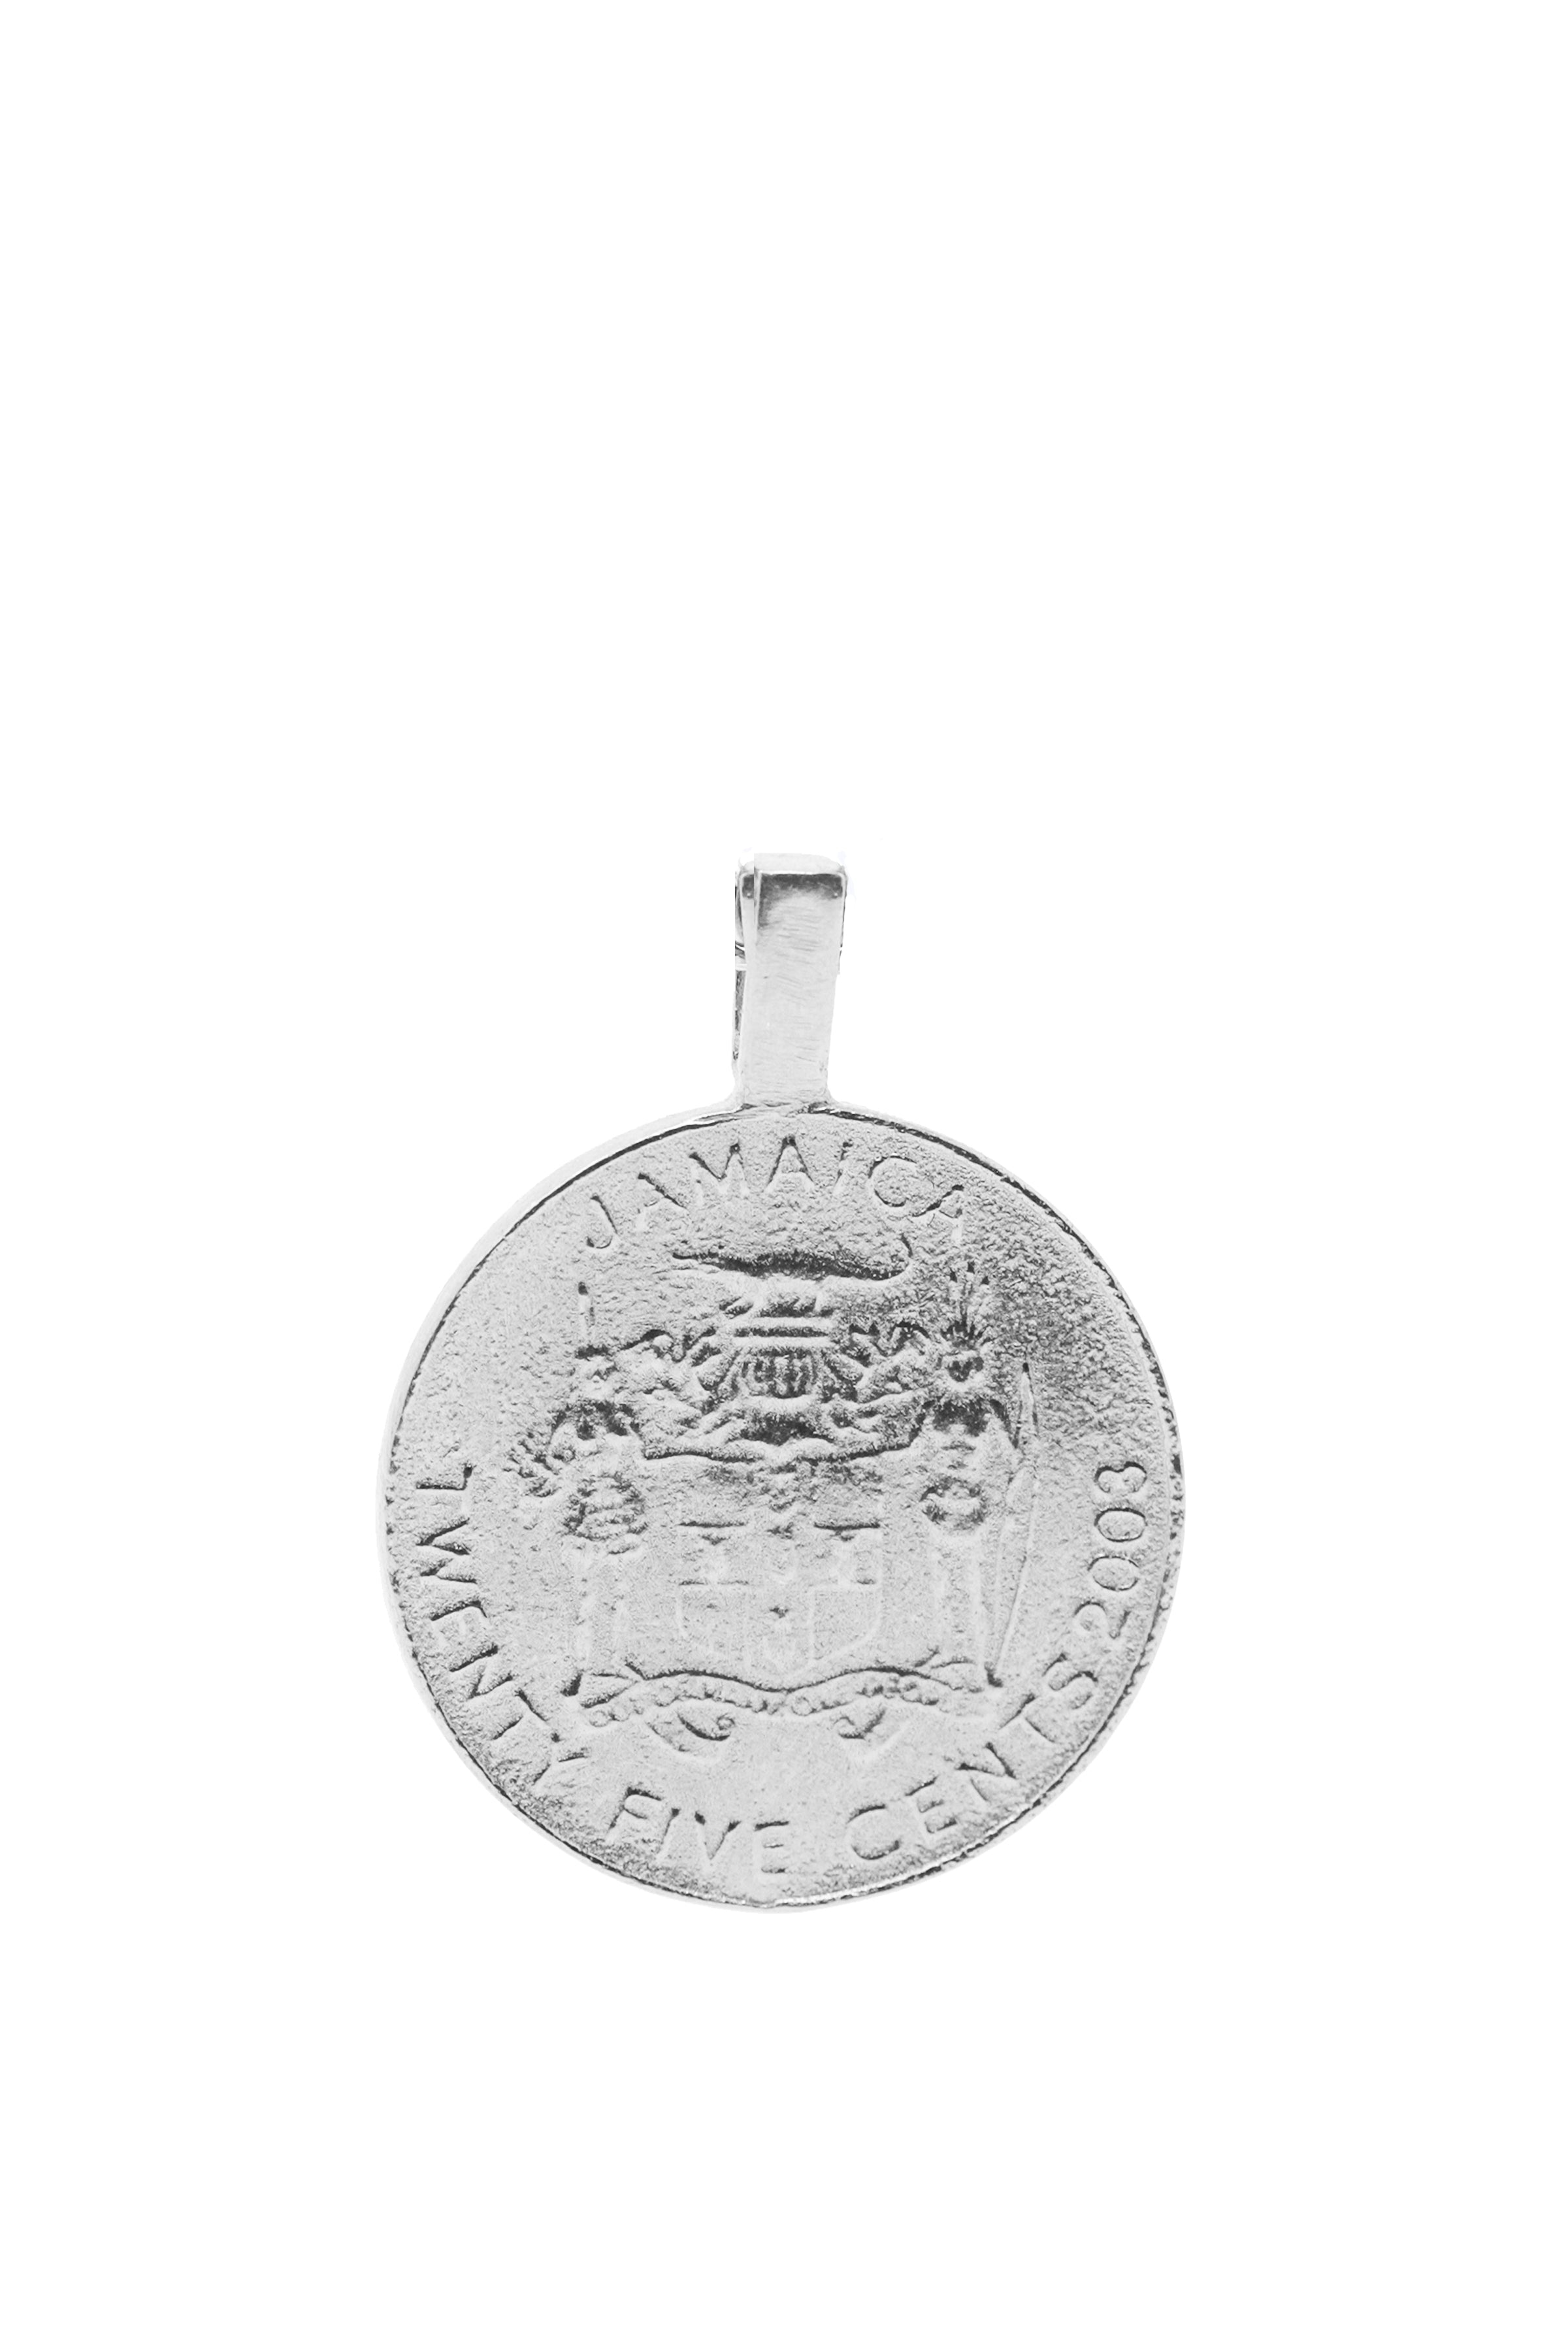 THE JAMAICA Garveyite Pendant in Silver